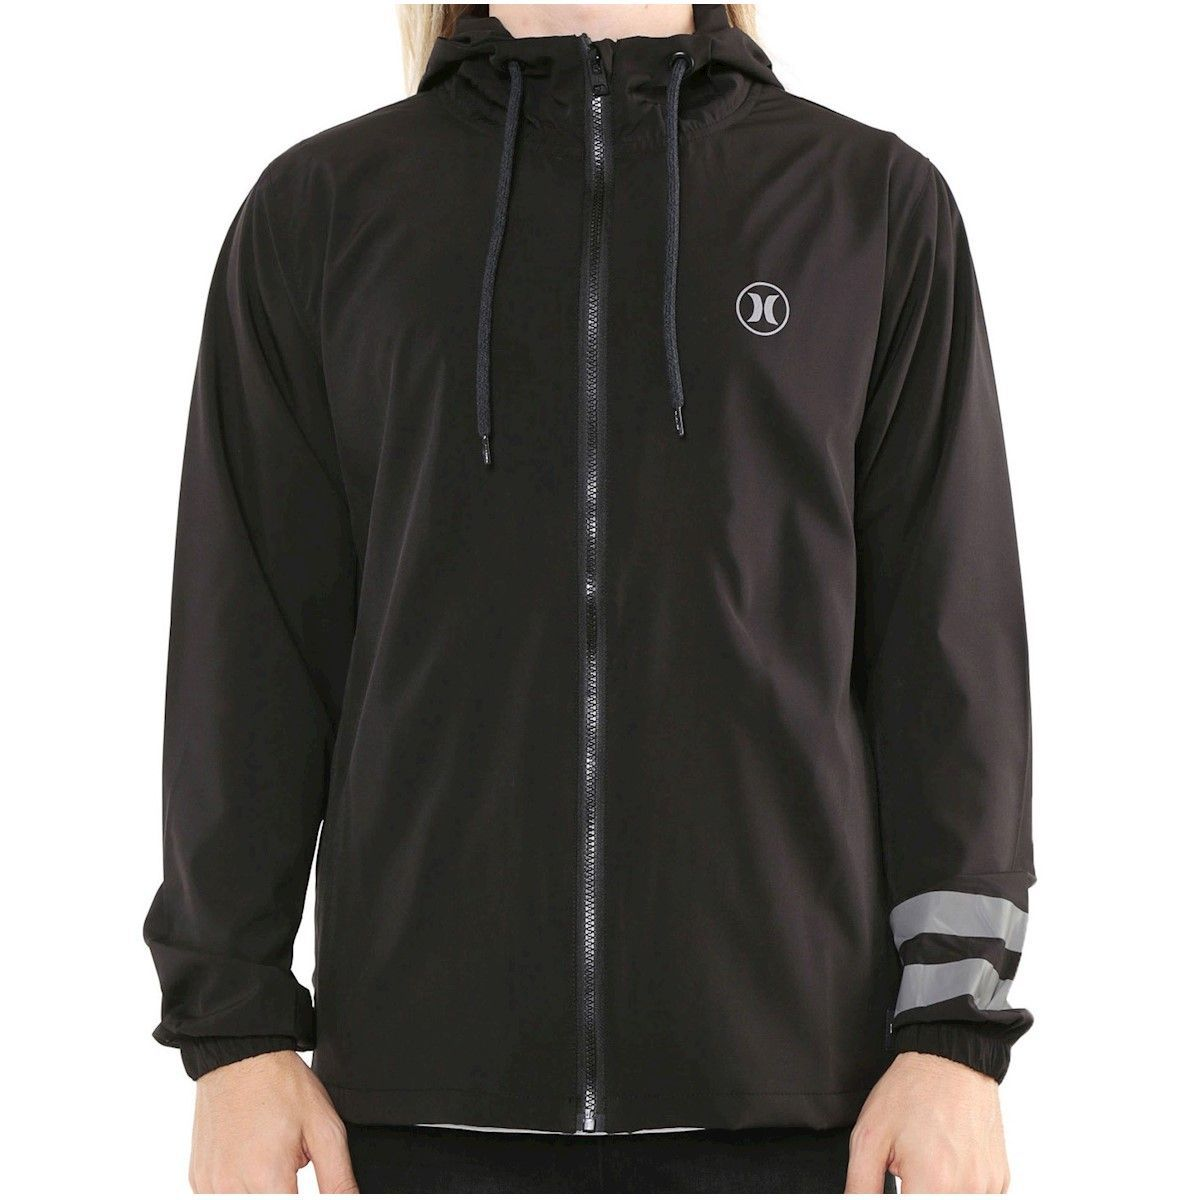 JAQUETA CORTA VENTO HURLEY WINDBREAKER BLOCK PARTY COM 17% OFF